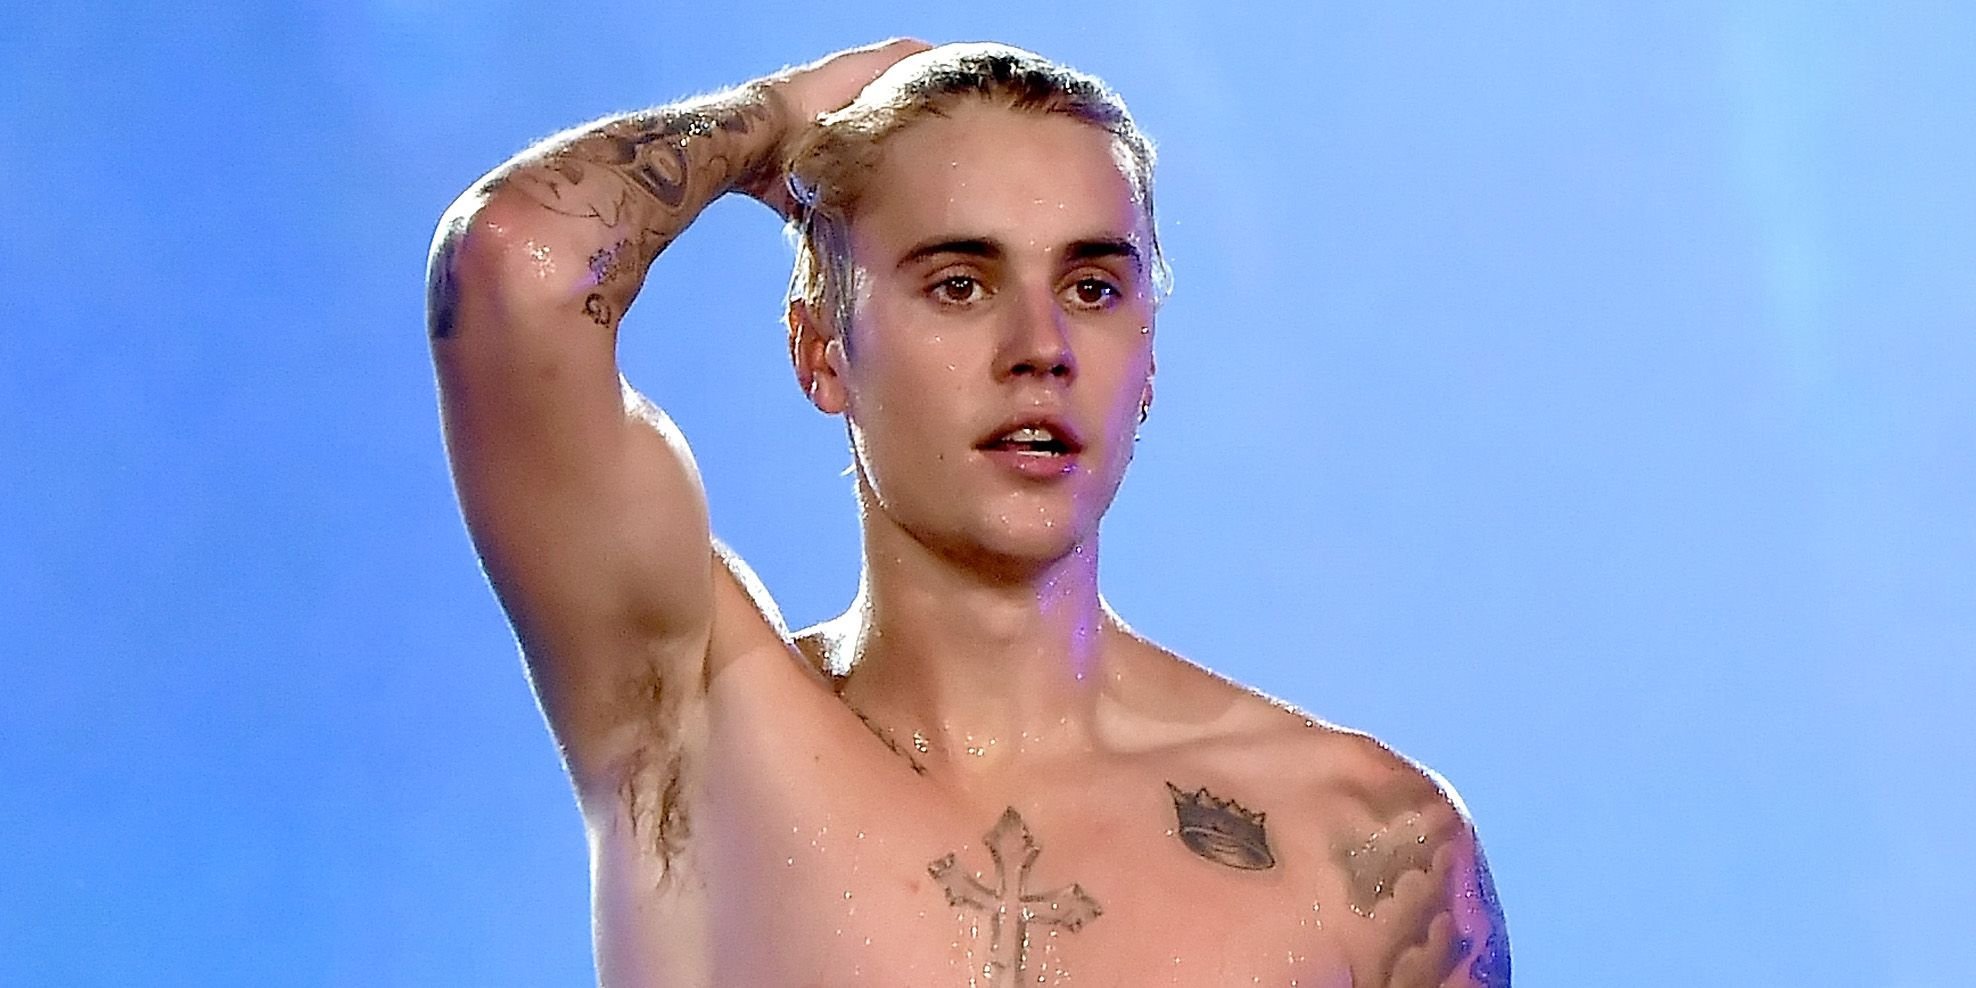 https://hips.hearstapps.com/hmg-prod.s3.amazonaws.com/images/justin-bieber-working-out-1523268791.jpg